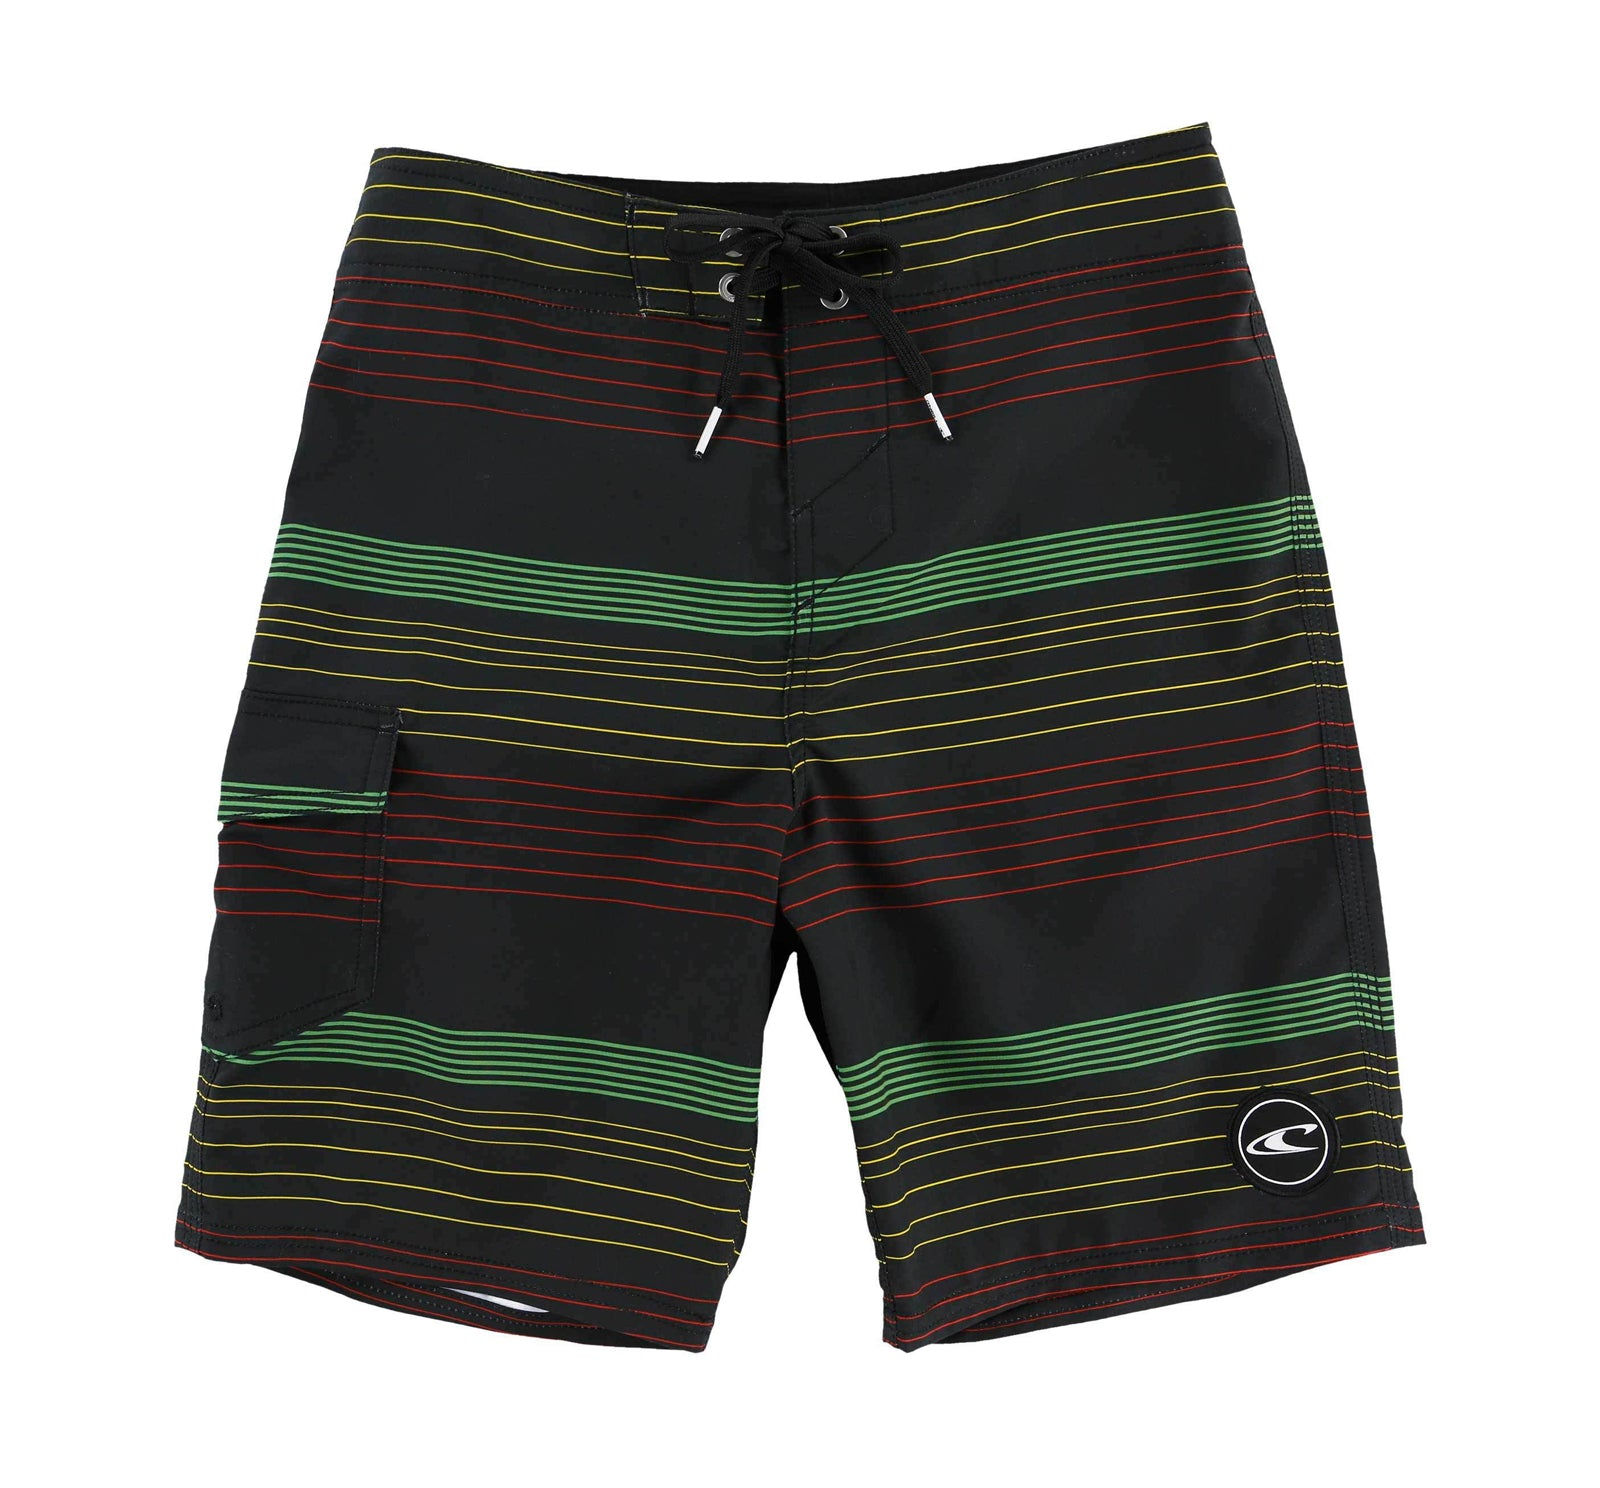 O'Neill Santa Cruz Stripe Youth Boy's Boardshort